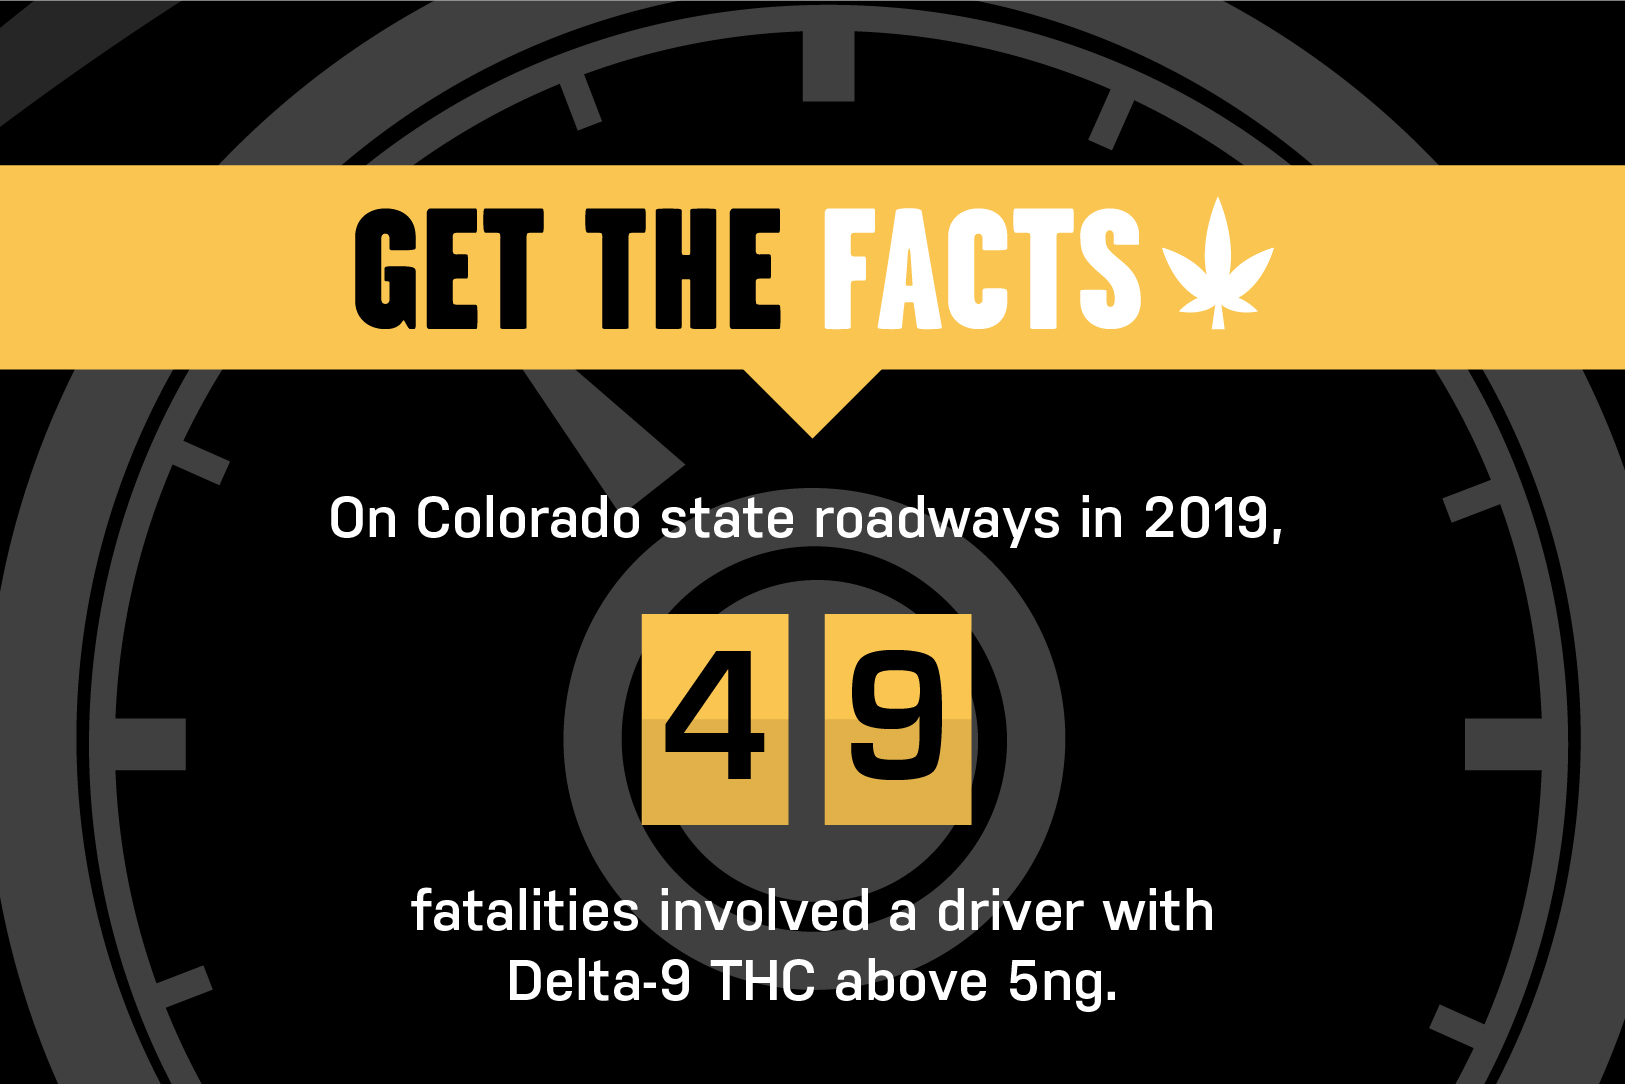 Marijuana, cannabis, marijuana-impaired driving, driving high, drunk driving, DUI, marijuana DUI, drinking and driving laws, DWI, safety, Get the facts: on Colorado roadways in 2019, 49 fatalities involved a driver with Delta-9 THC above 5mg.